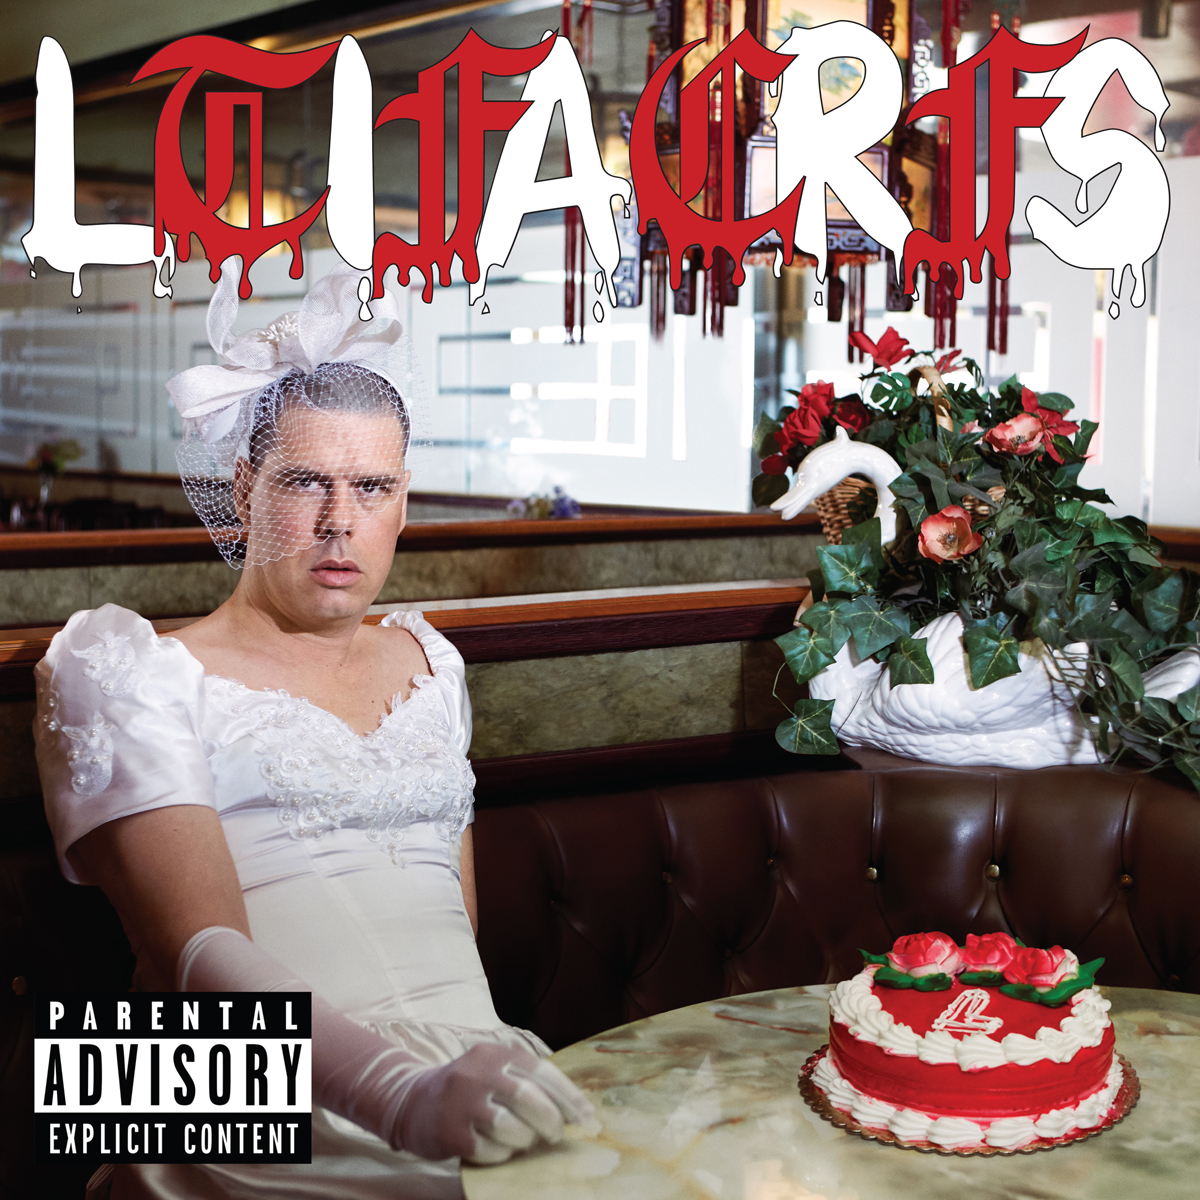 Stream Liars' new album 'TFCF' in full + watch new video for 'Cred Woes'